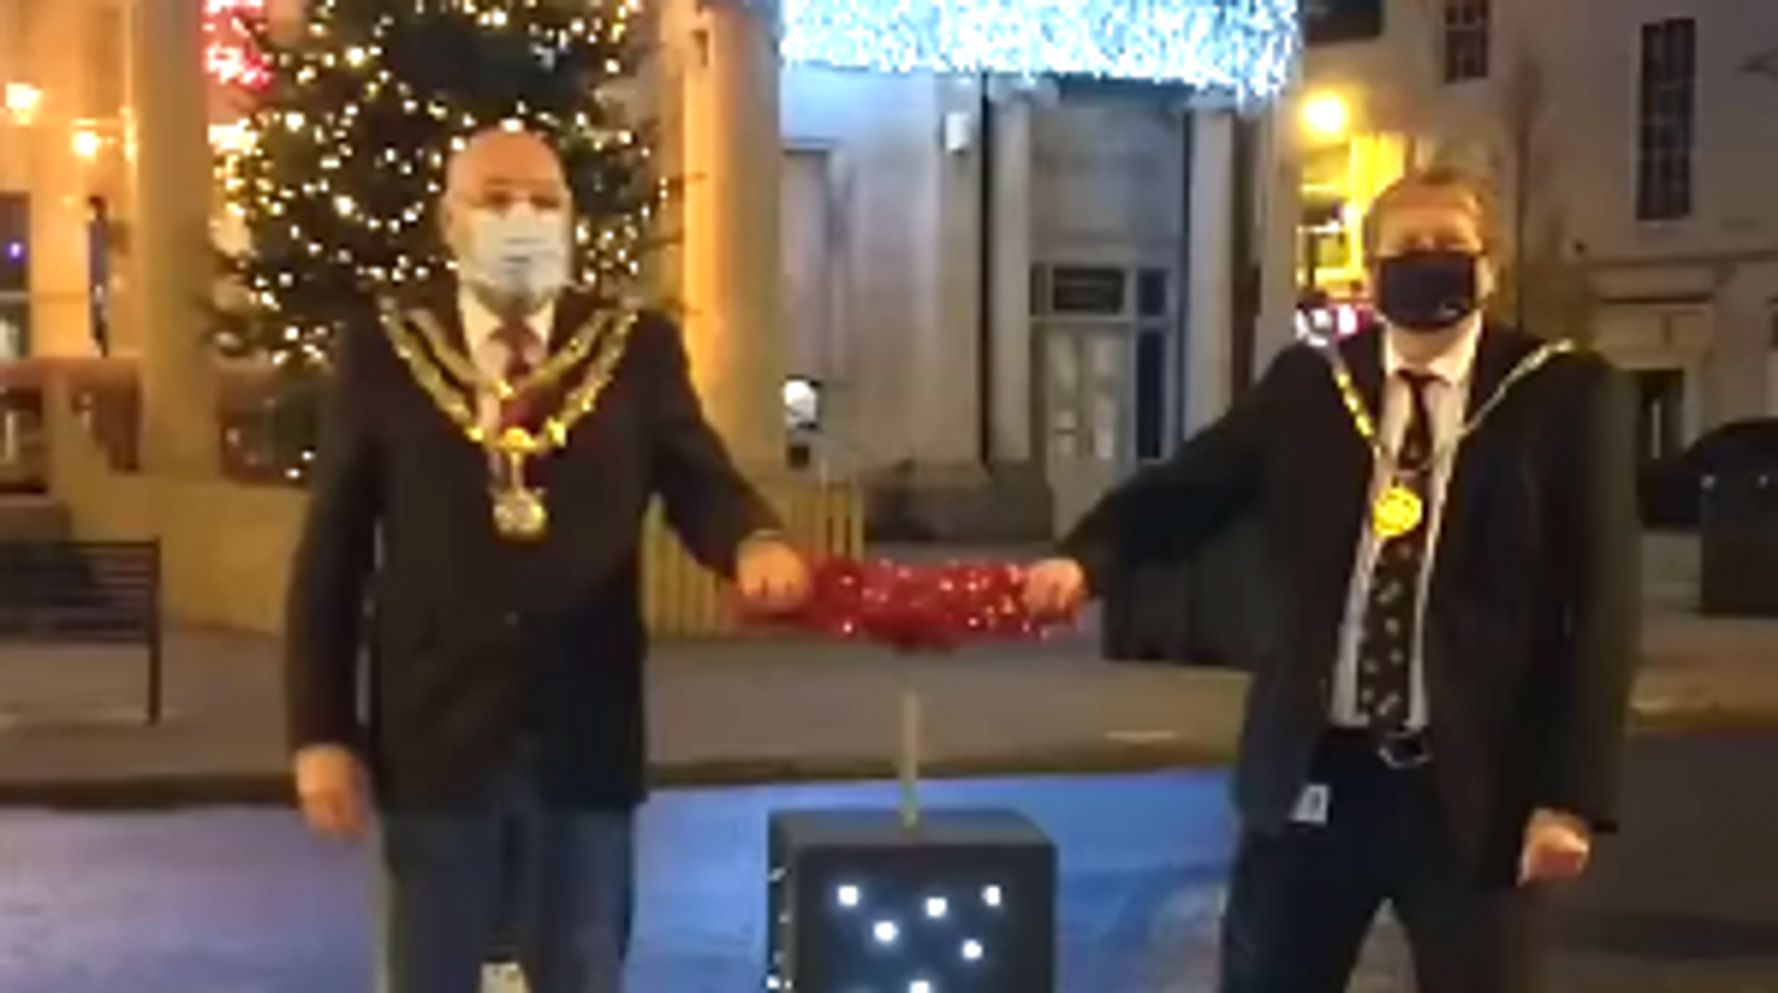 The Timing Of This Town's Christmas Lights Switch-On Couldn't Be Funnier